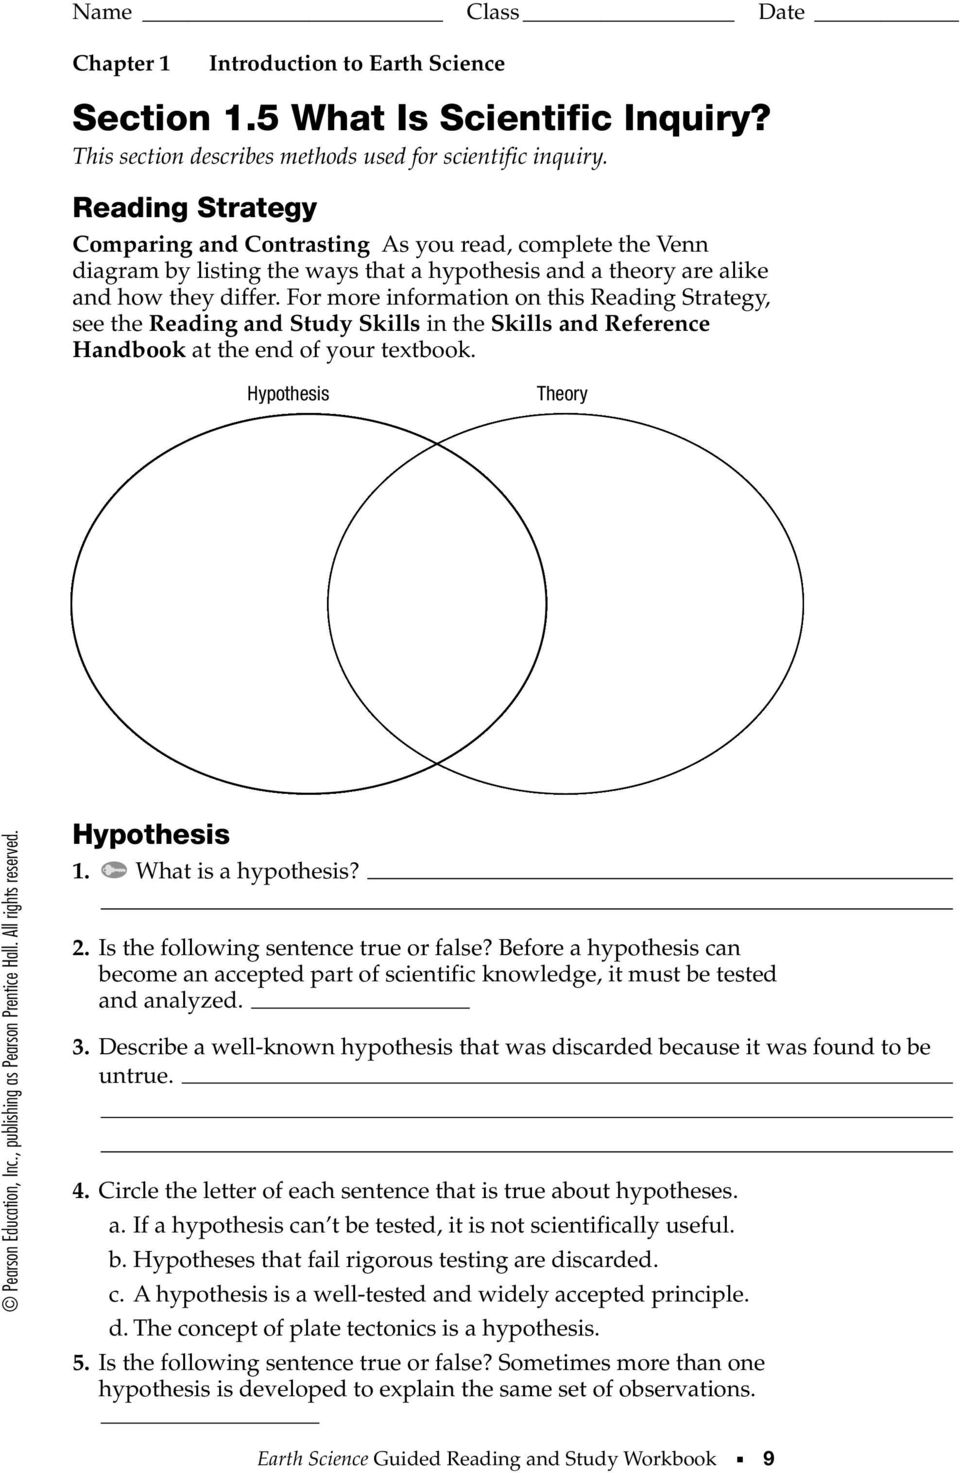 Hypothesis Vs Theory Venn Diagram Logic Section 1 What Is Earth Science This Explains